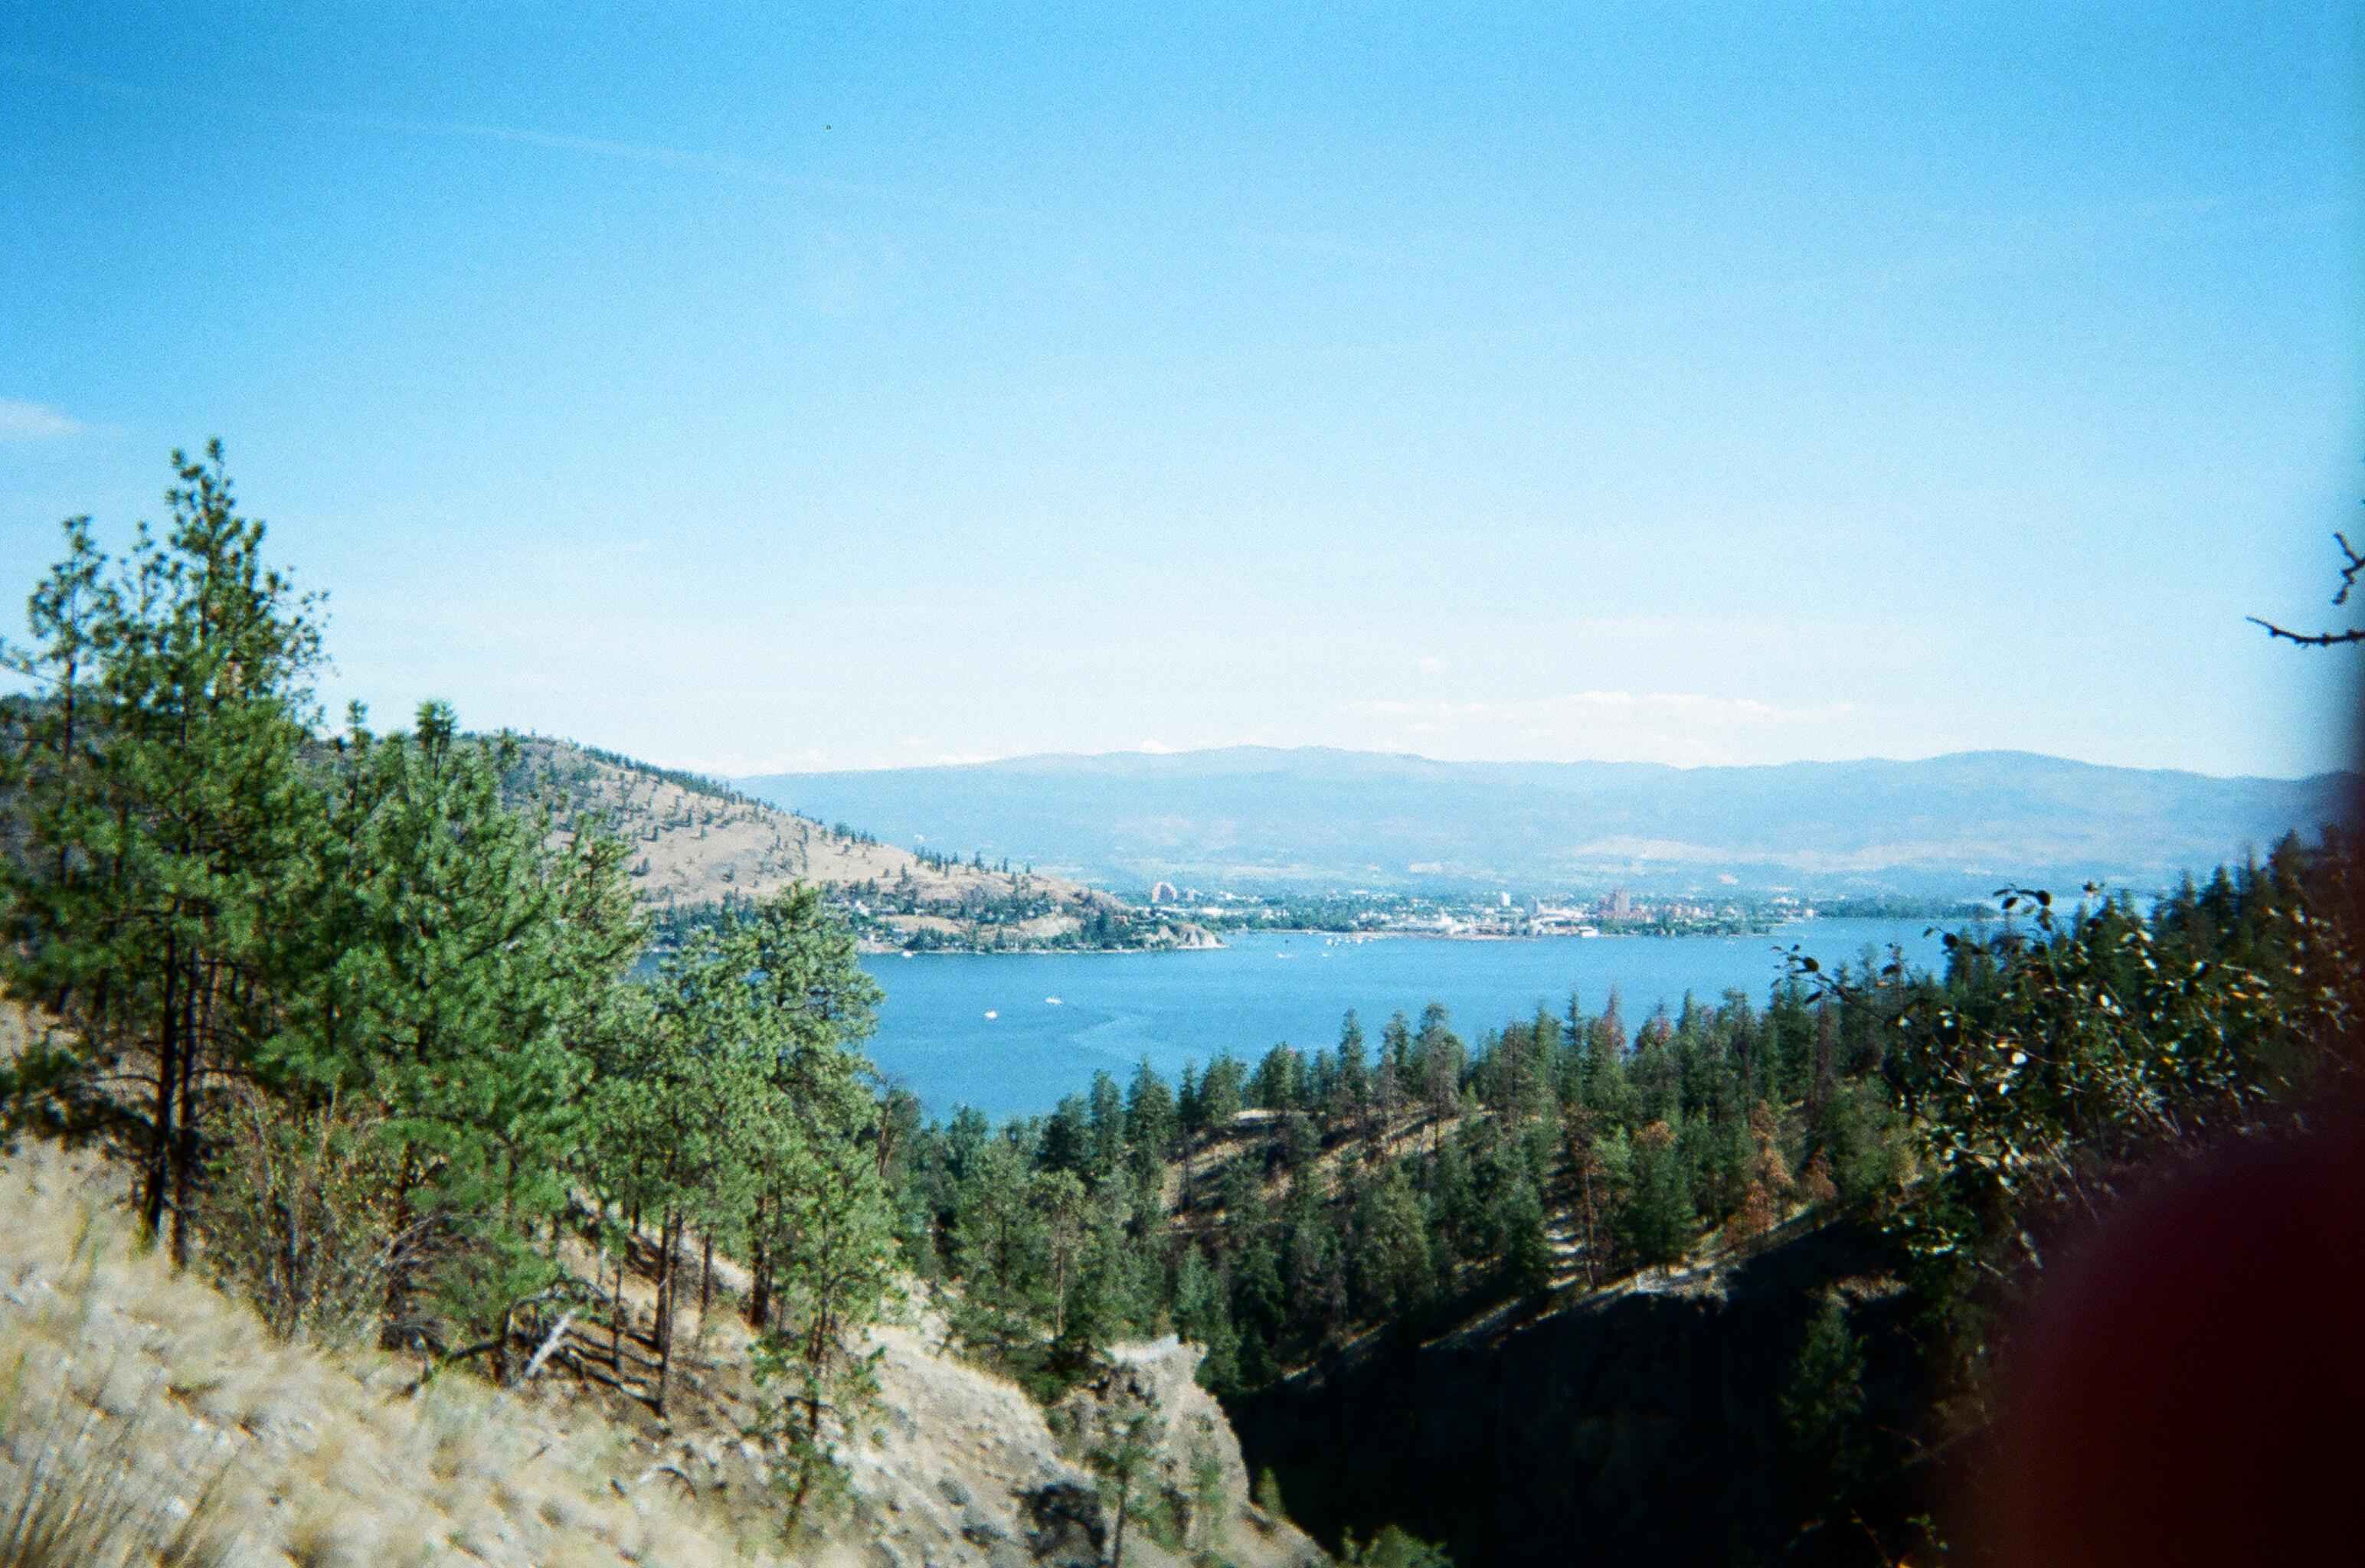 City Of Kelowna Property Taxes Due Date